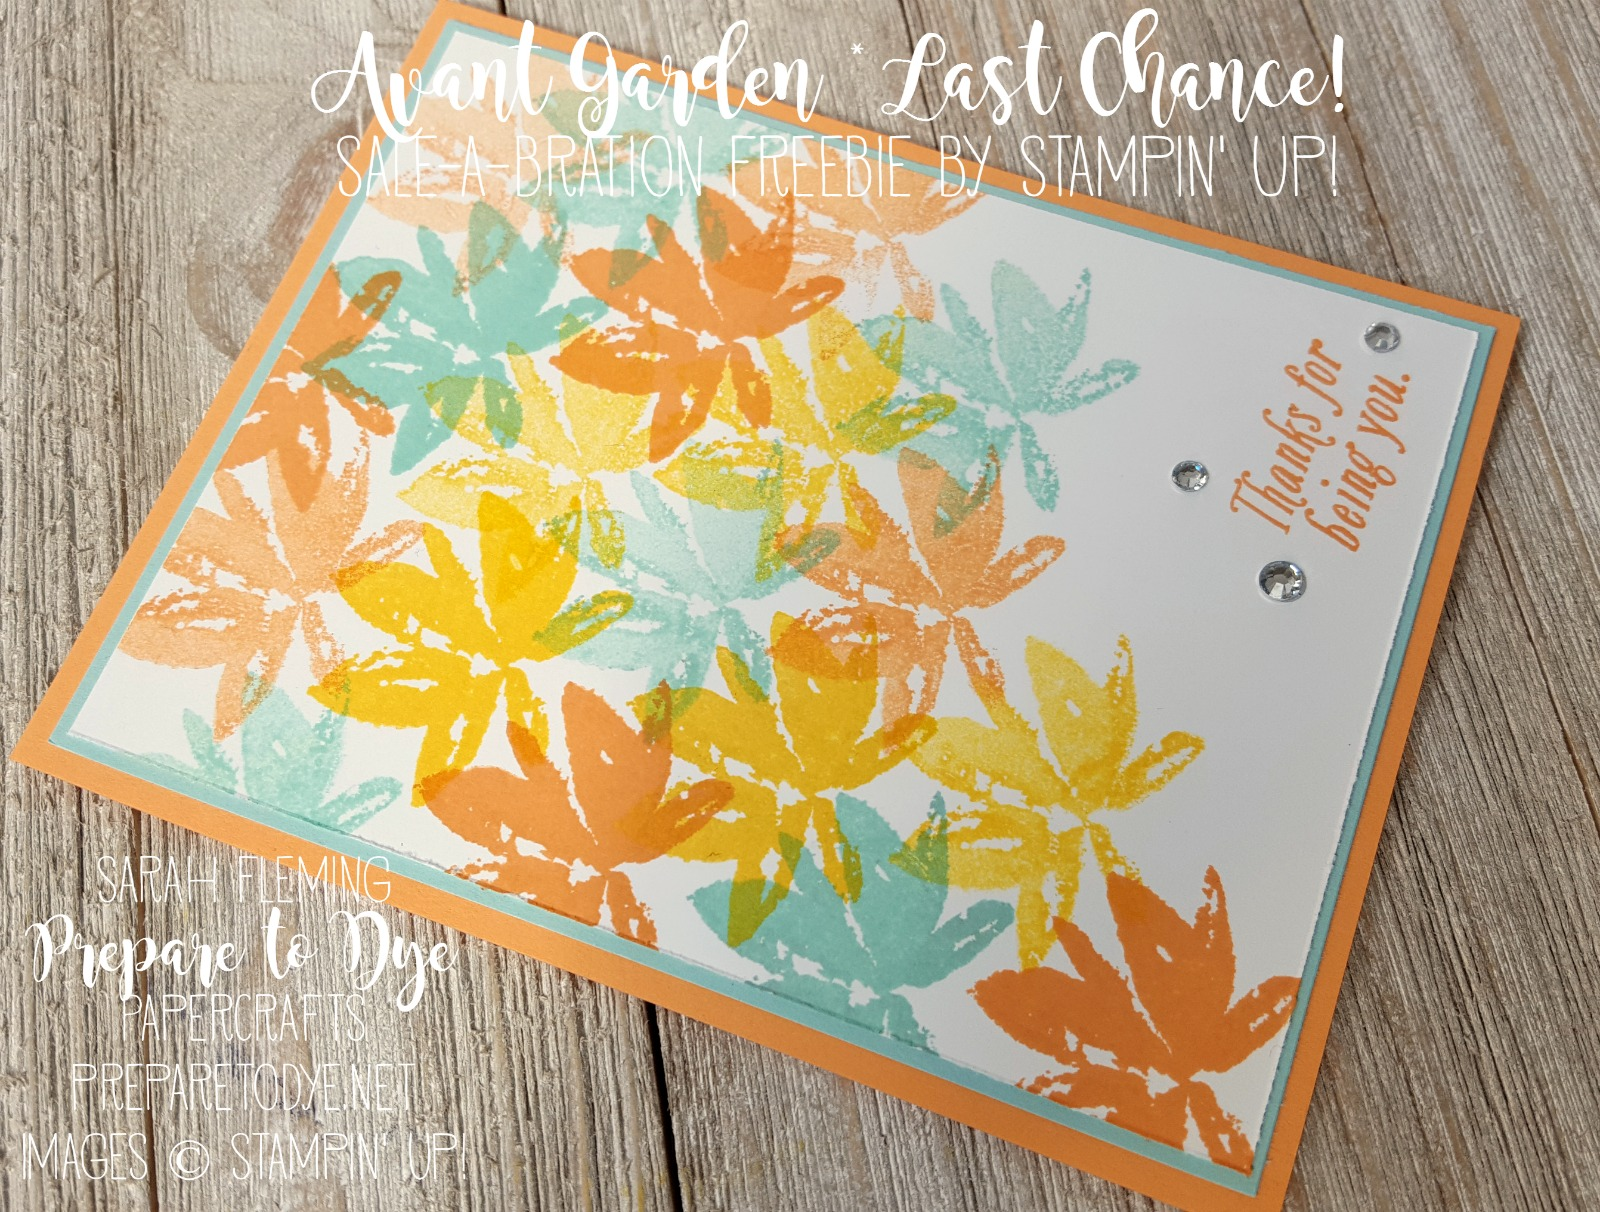 Stampin' Up! Avant Garden - Last chance to get this set for free with a $50 purchase! - Sarah Fleming - Prepare to Dye Papercrafts